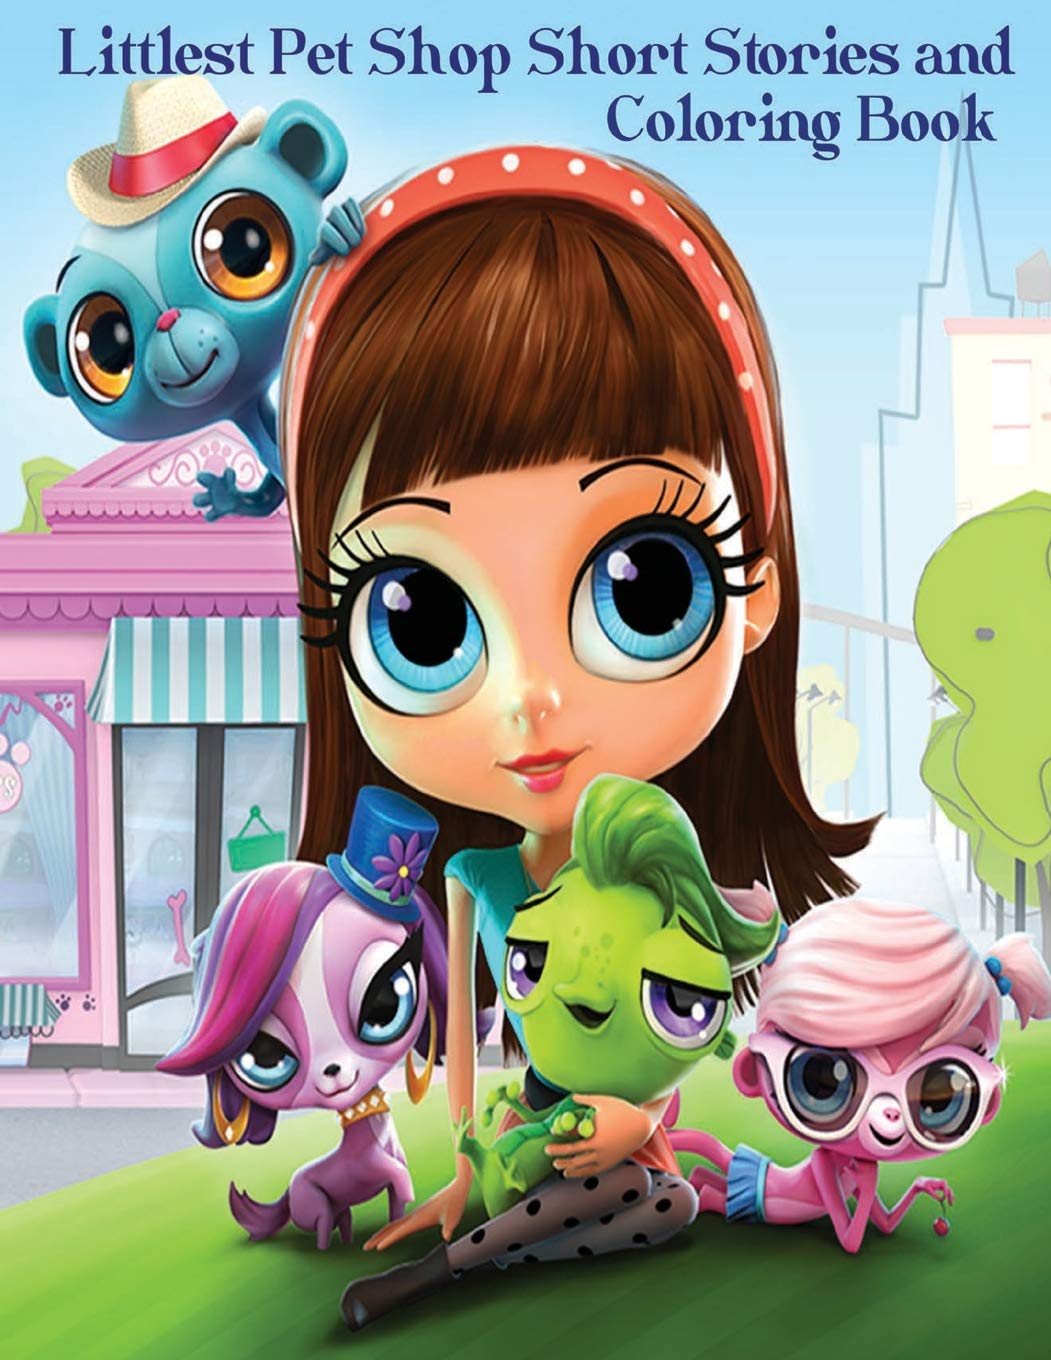 - Littlest Pet Shop Short Stories And Coloring Book: In This A4 50